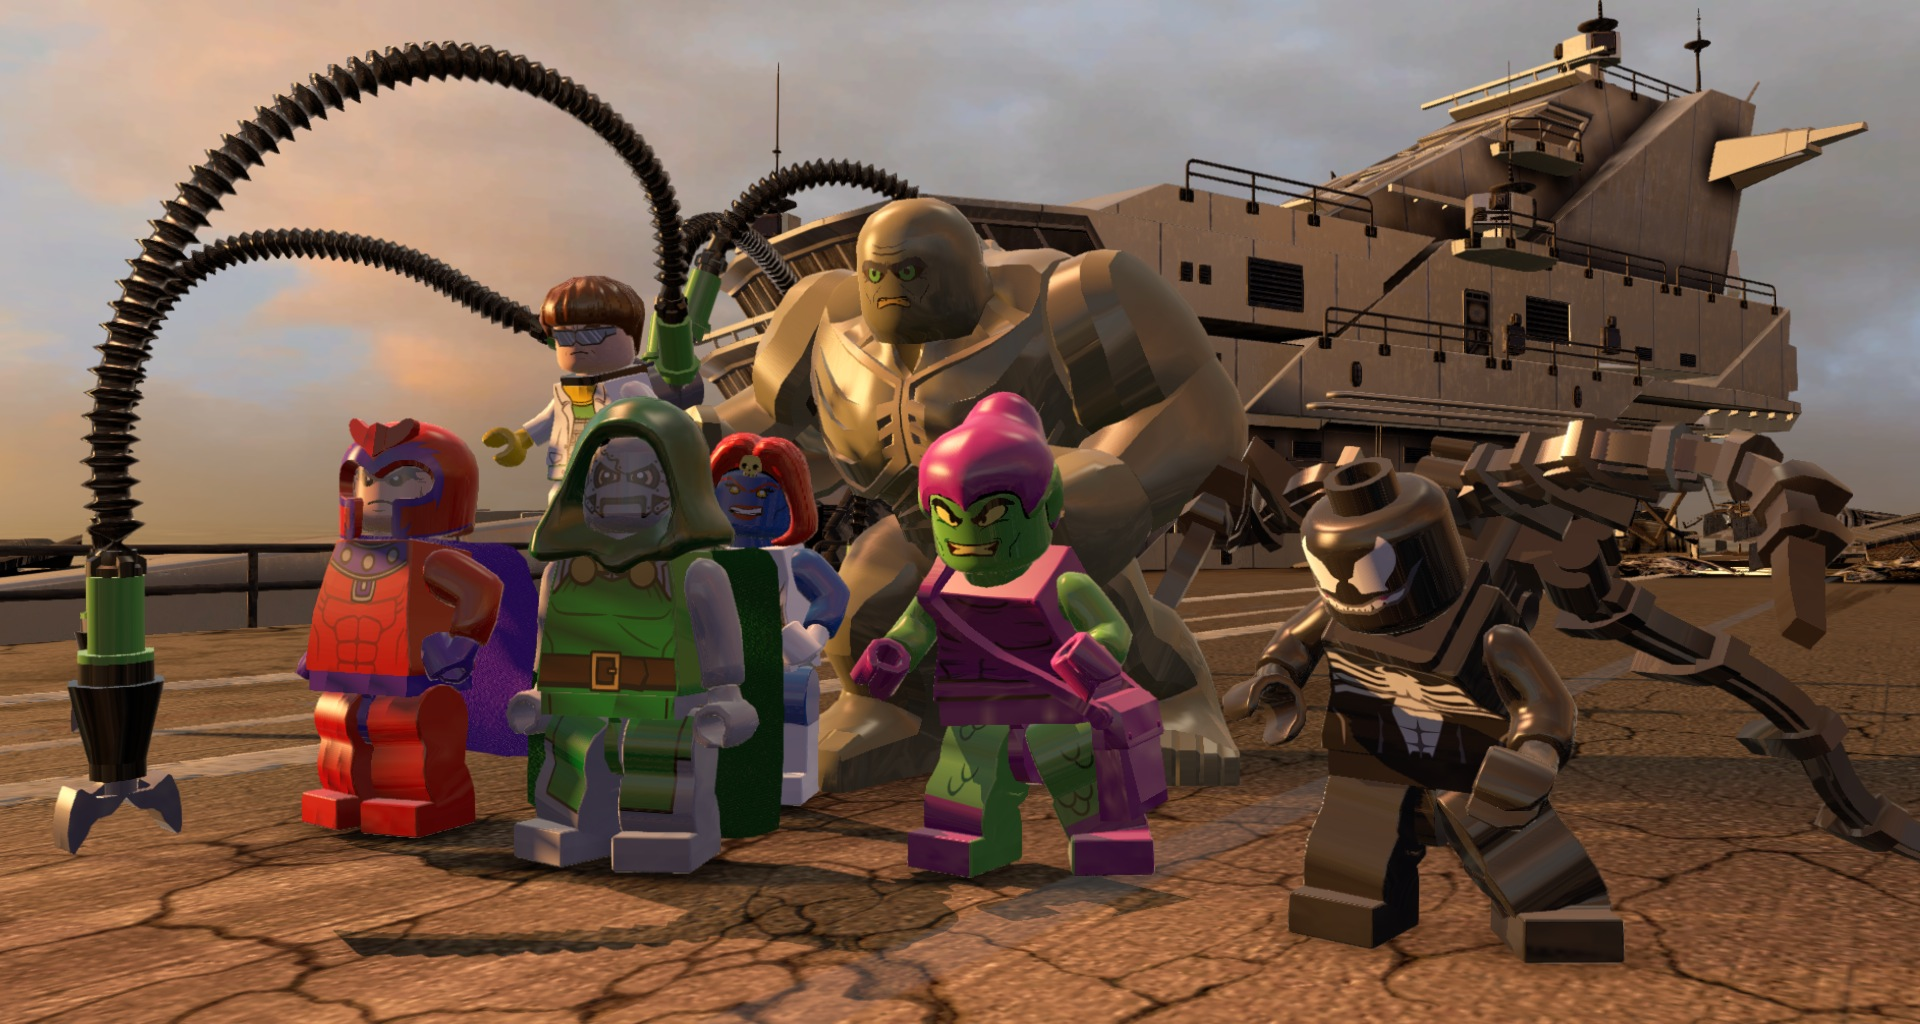 Lego Marvel Super Heroes 2 gets teased, full trailer to be shown May 23 screenshot